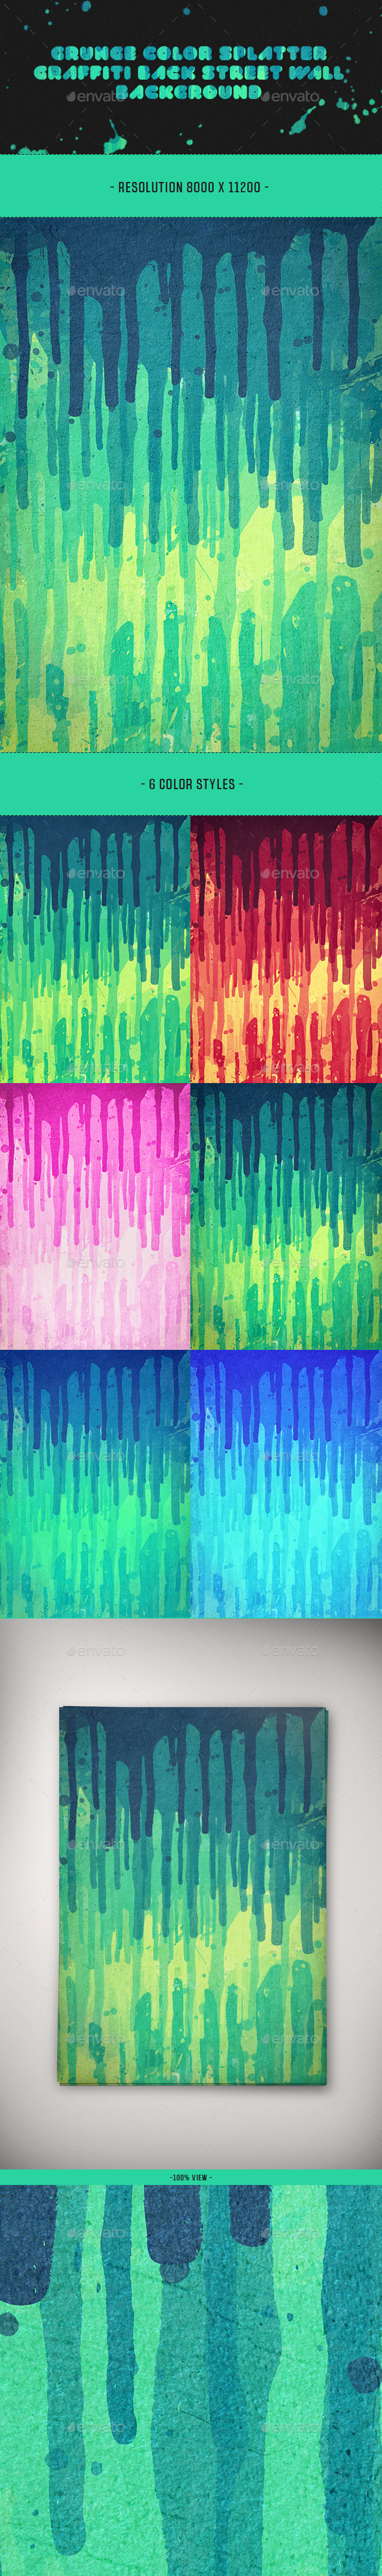 6 Grunge Color Splatter Graffiti Wall Background s